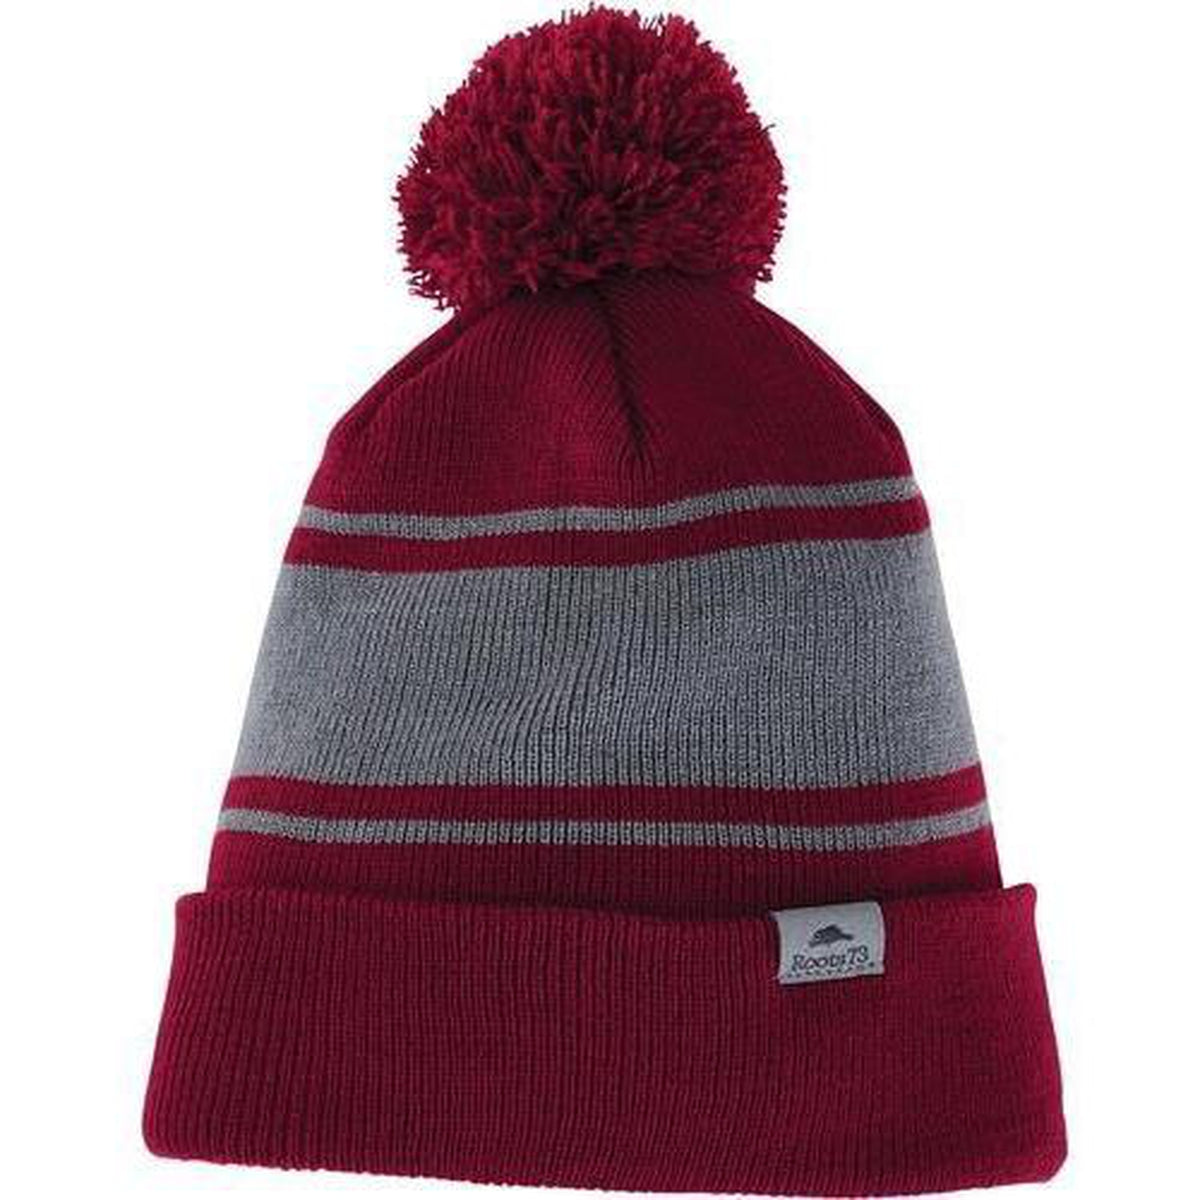 Roots73 Parktrail Knit Toque-Dark Red/Quarry-Thread Logic